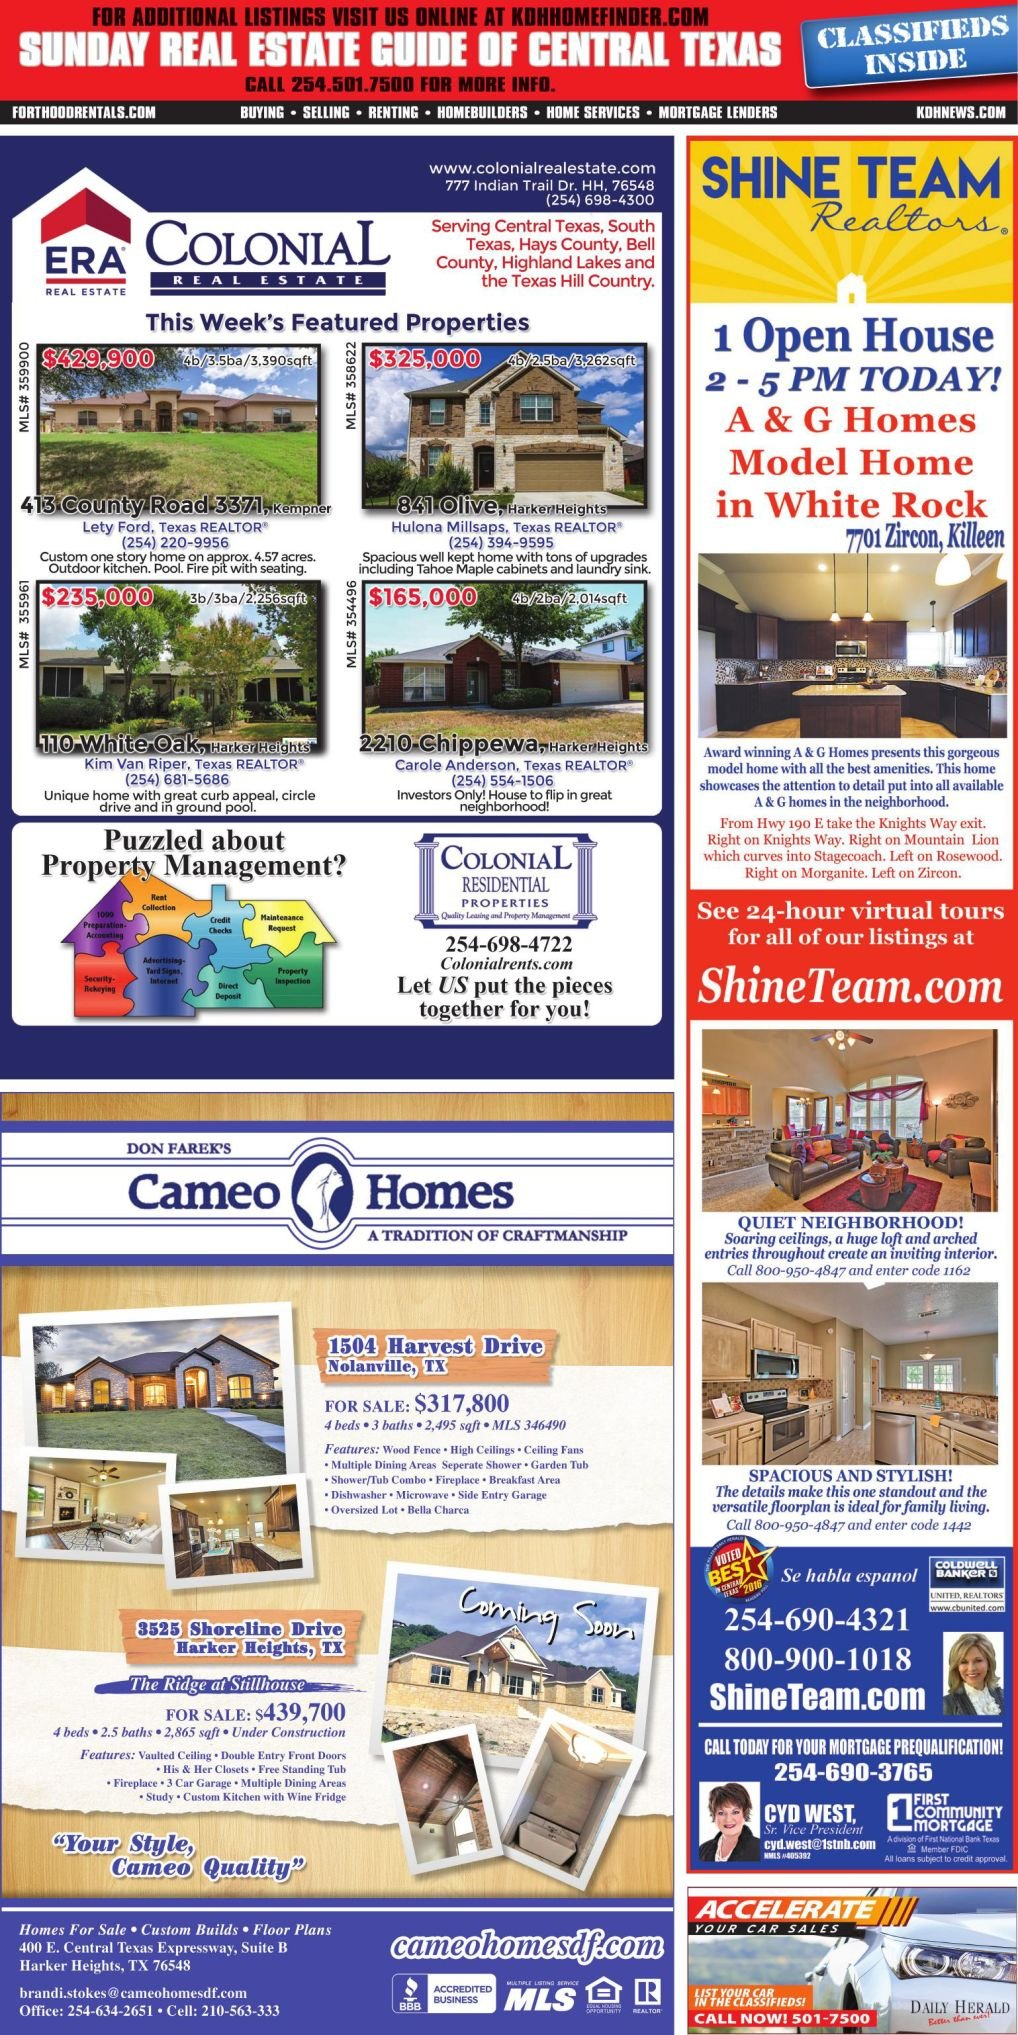 Sunday Real Estate Guide Sept 30th